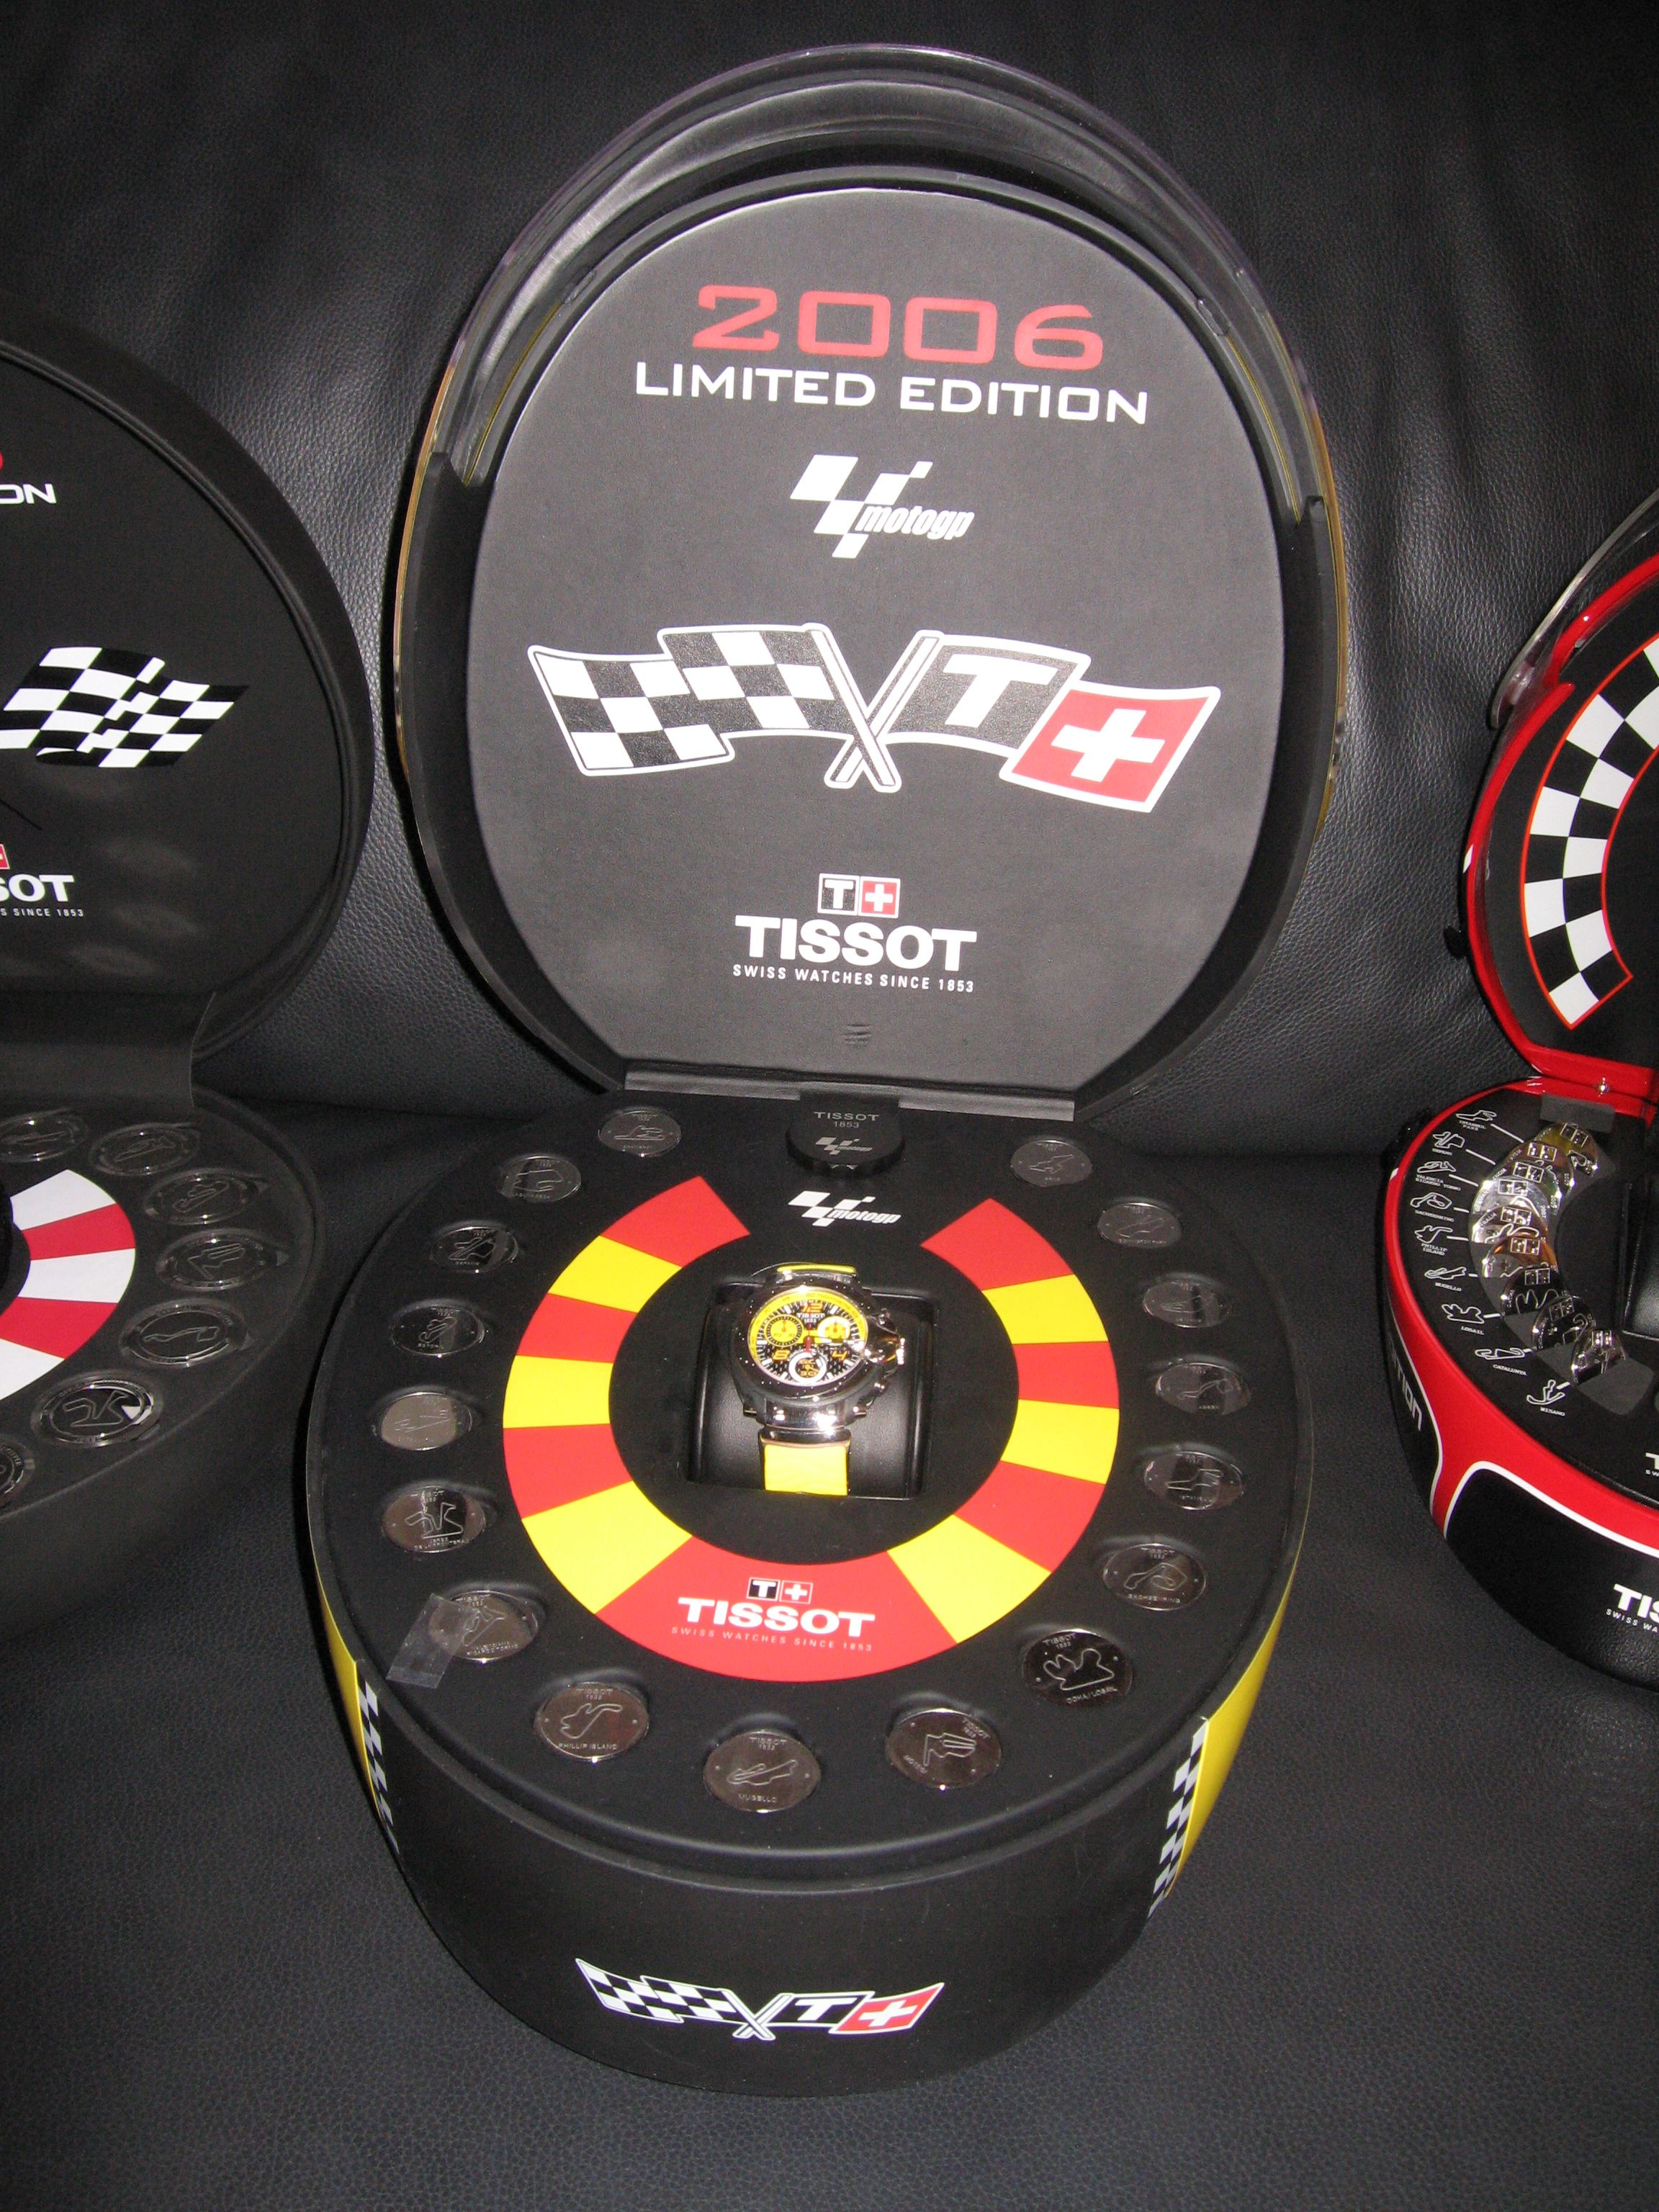 f1b8394c3fd Tissot Moto GP watches Limited edition collectors watches. Year 2006.